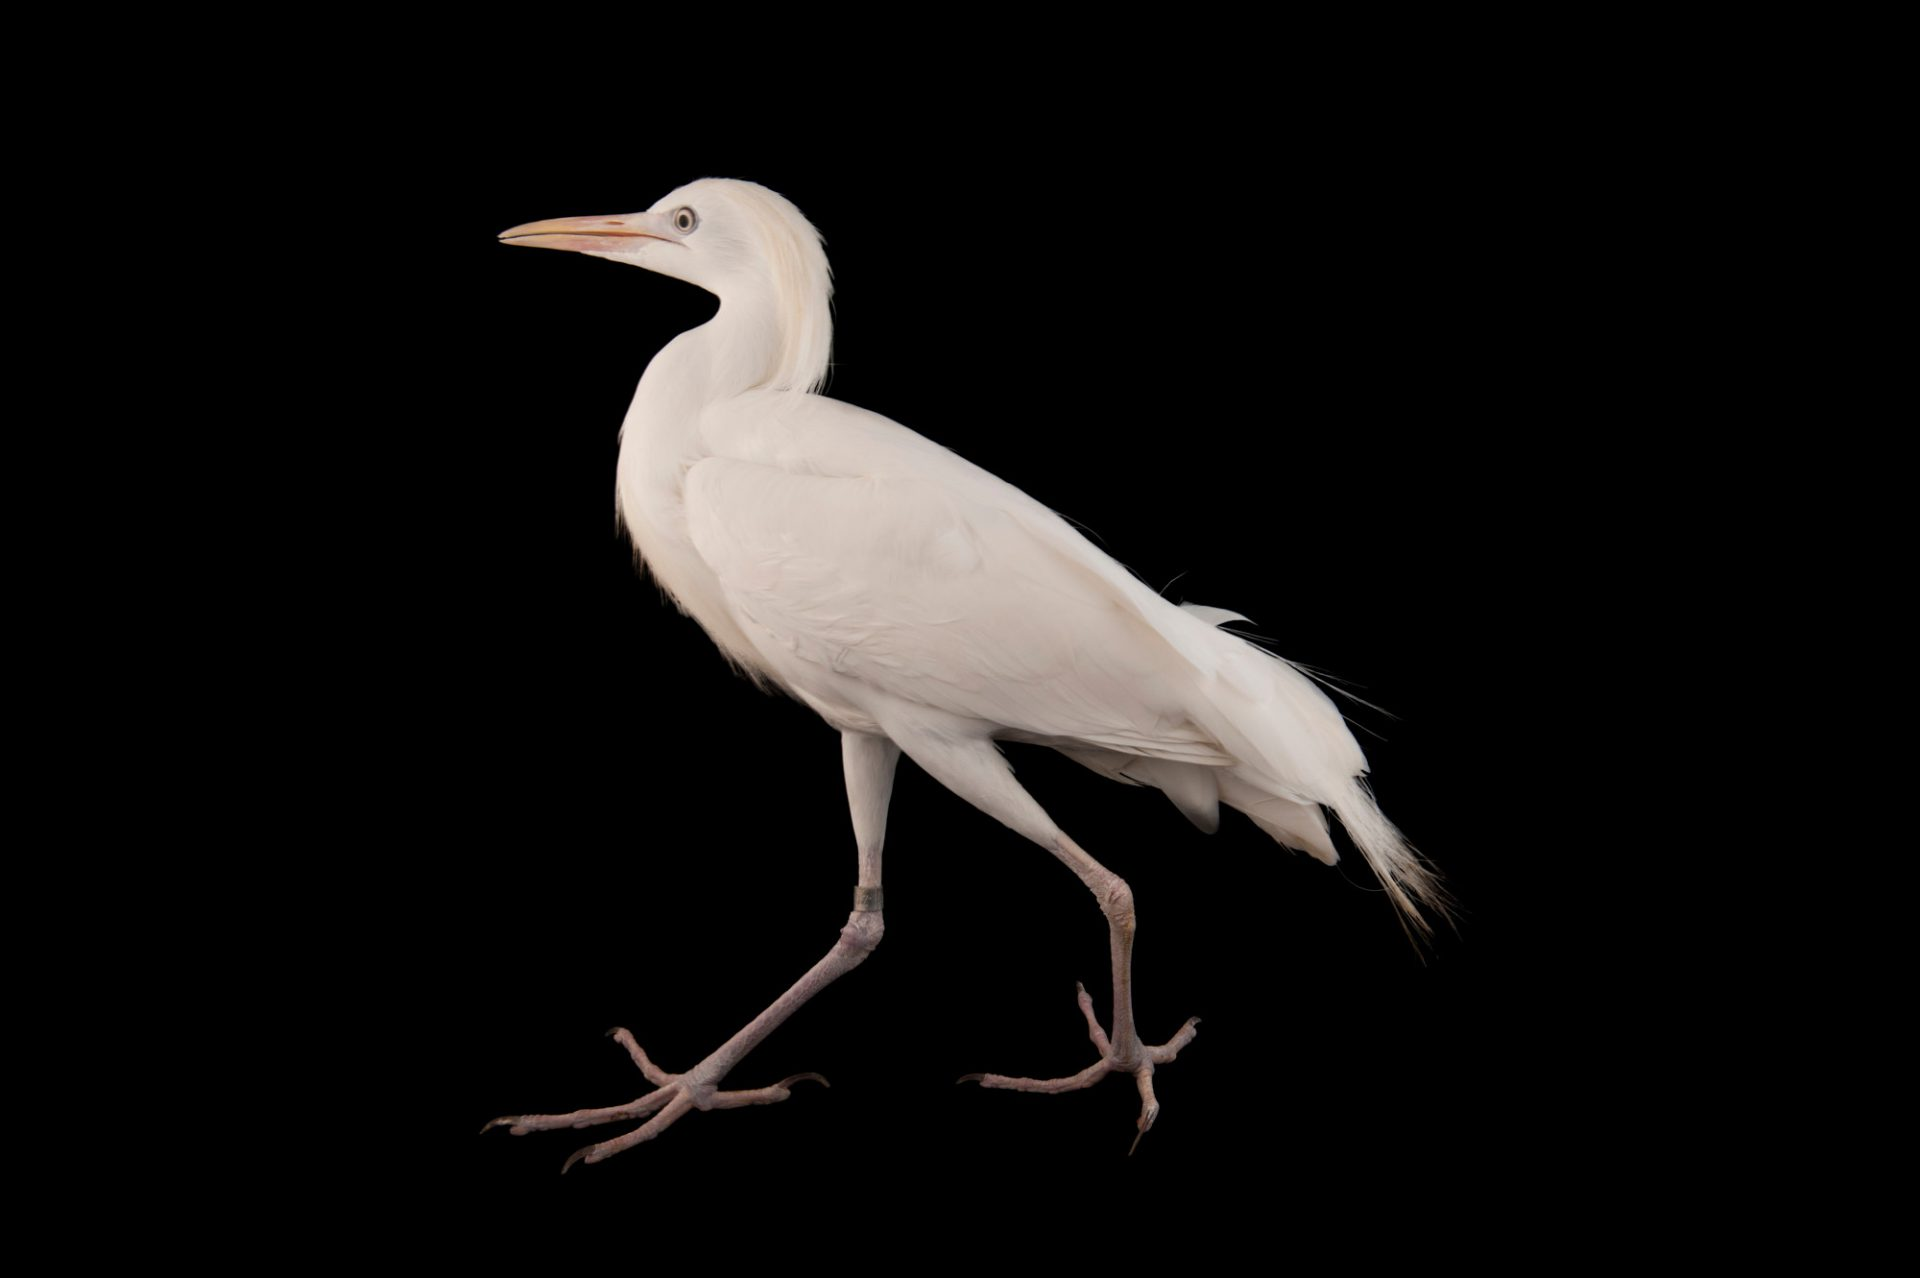 Picture of a western cattle egret (Bubulcus ibis) at Omaha's Henry Doorly Zoo and Aquarium, Omaha, Nebraska.